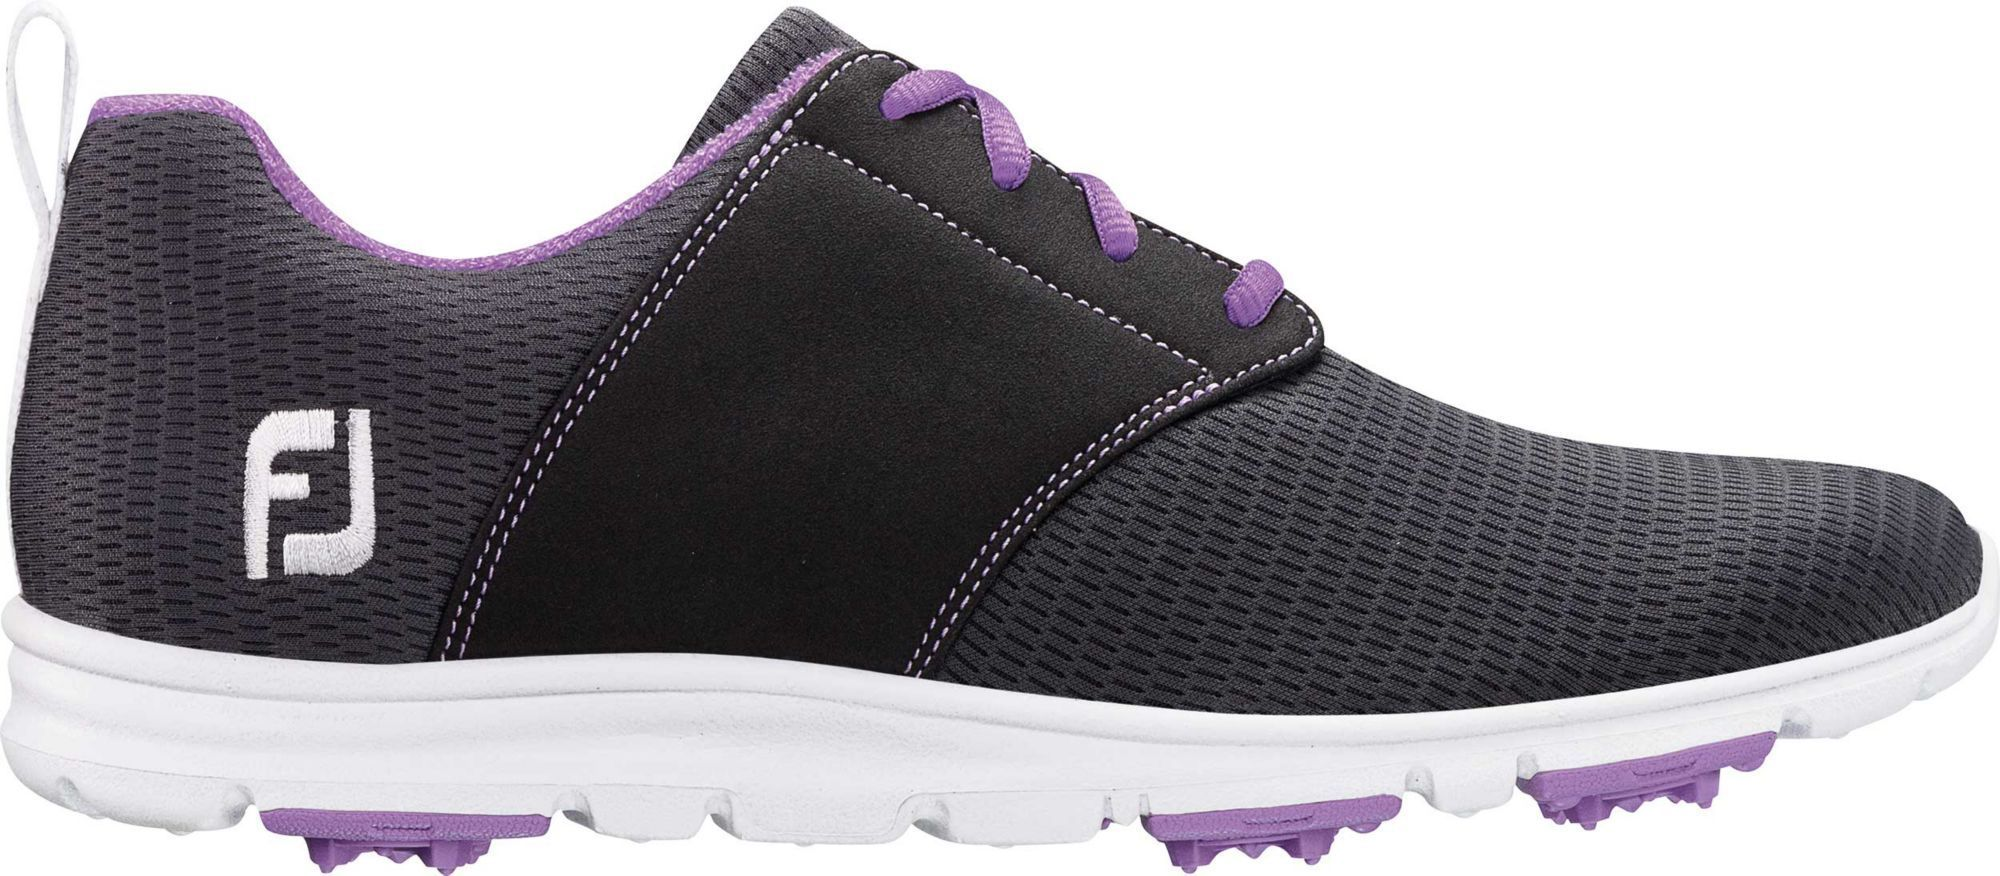 Pin on Golf Shoes